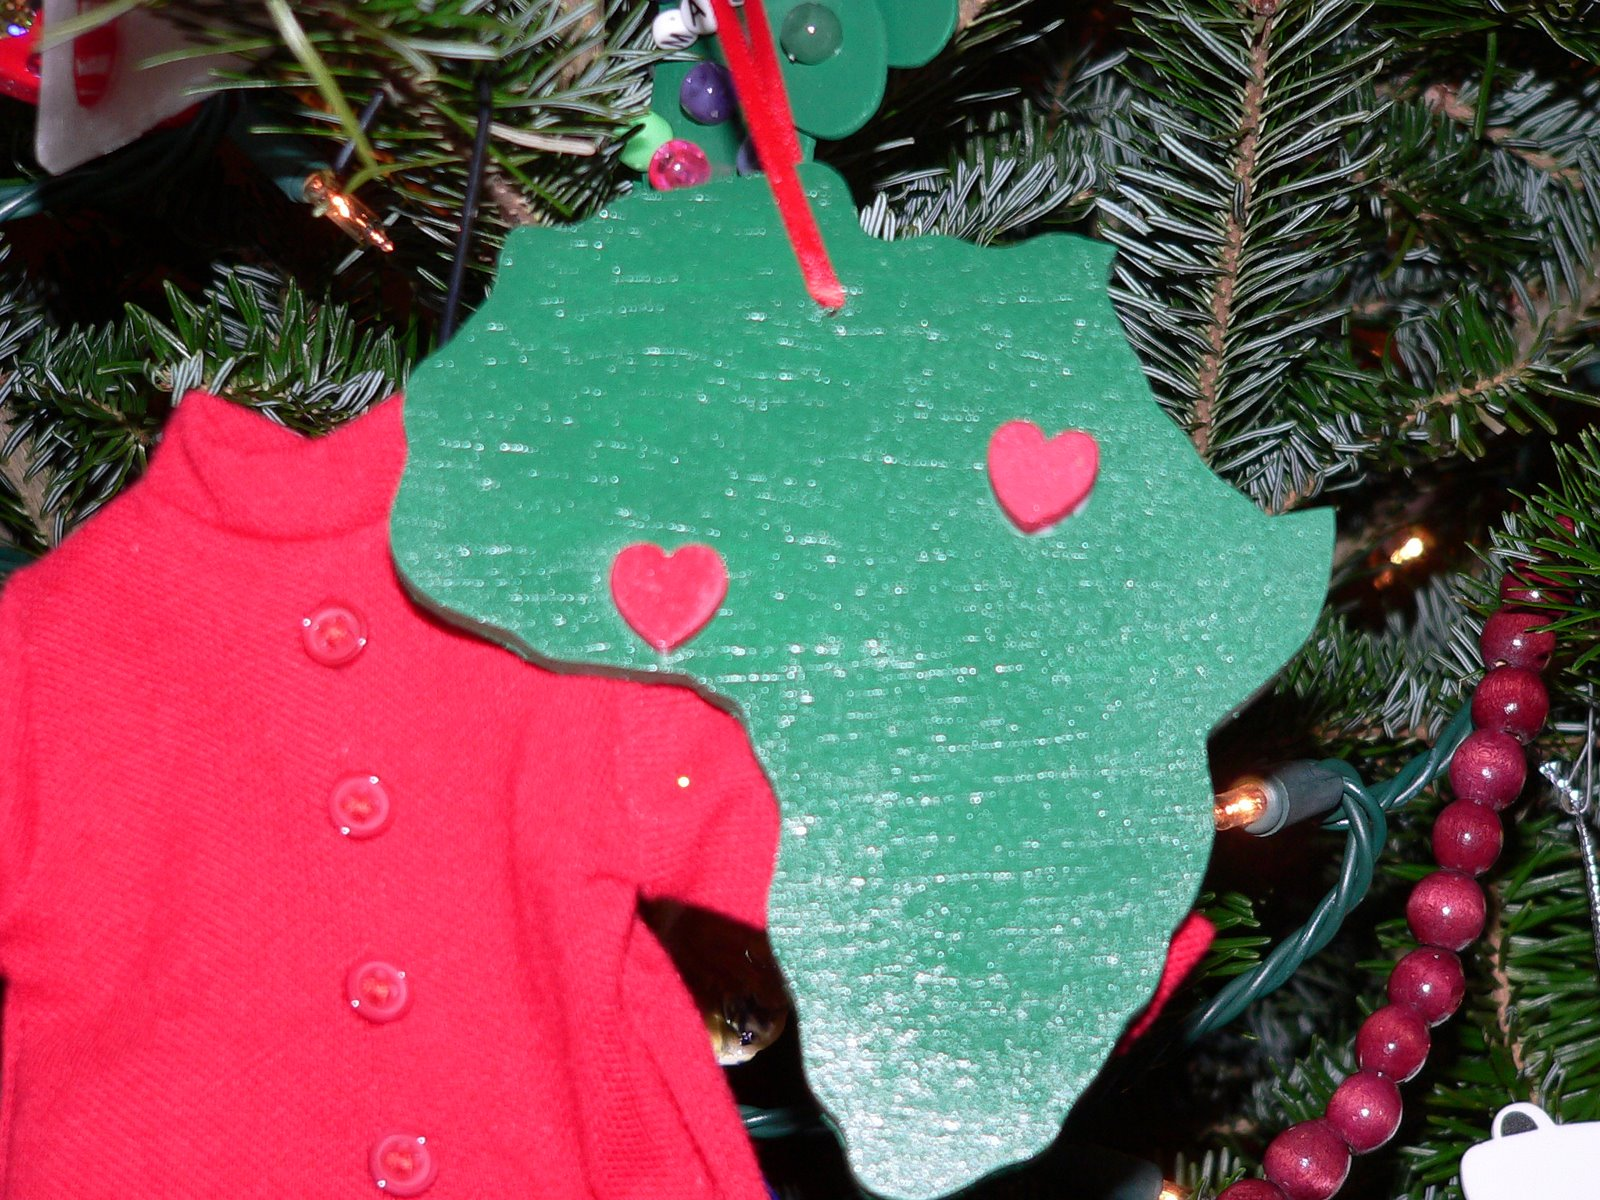 Decorations For Christmas In Ghana : Ghana africa adoption mission and family bb bits